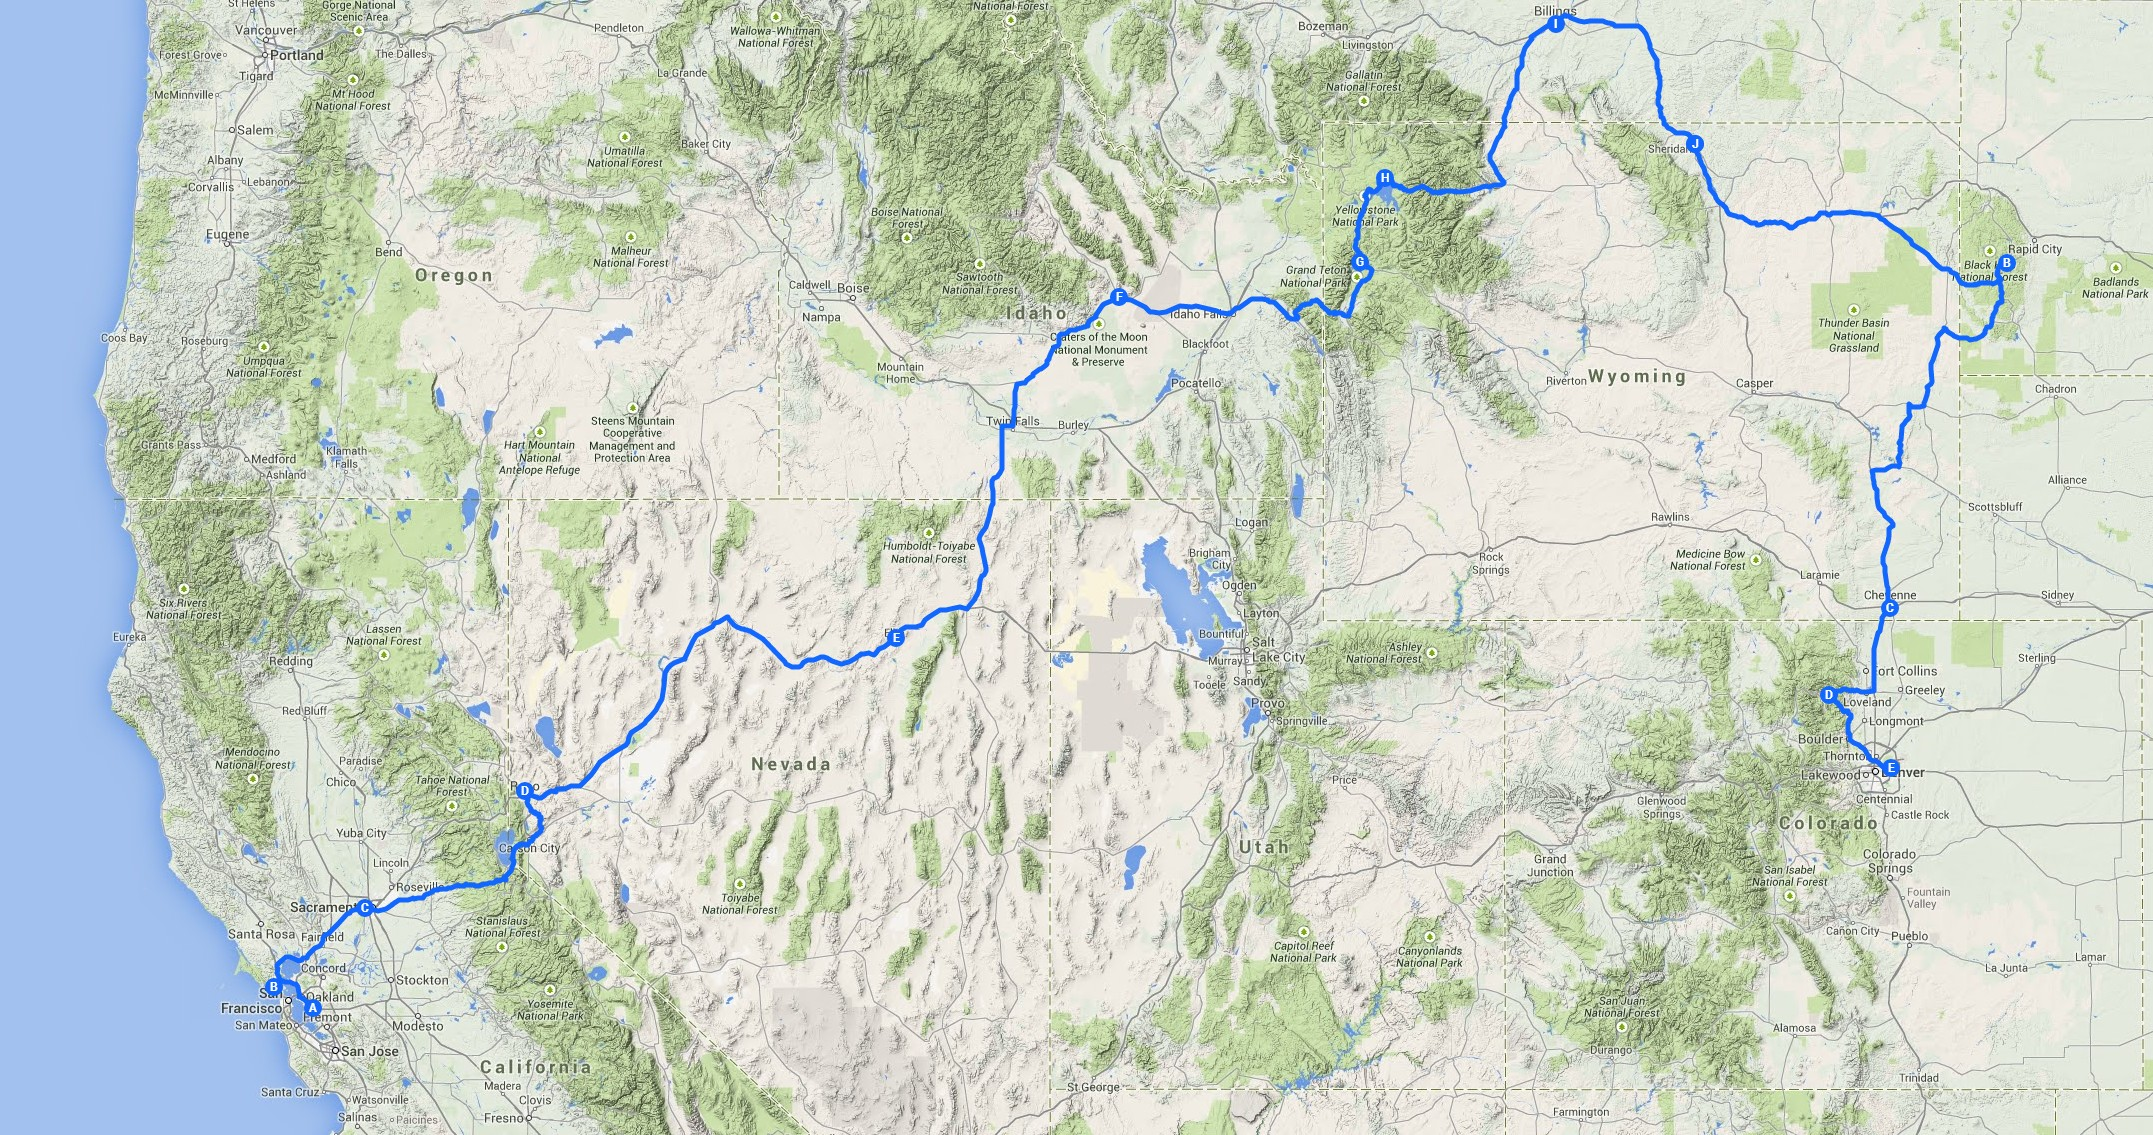 Routekaart San Francisco naar Denver